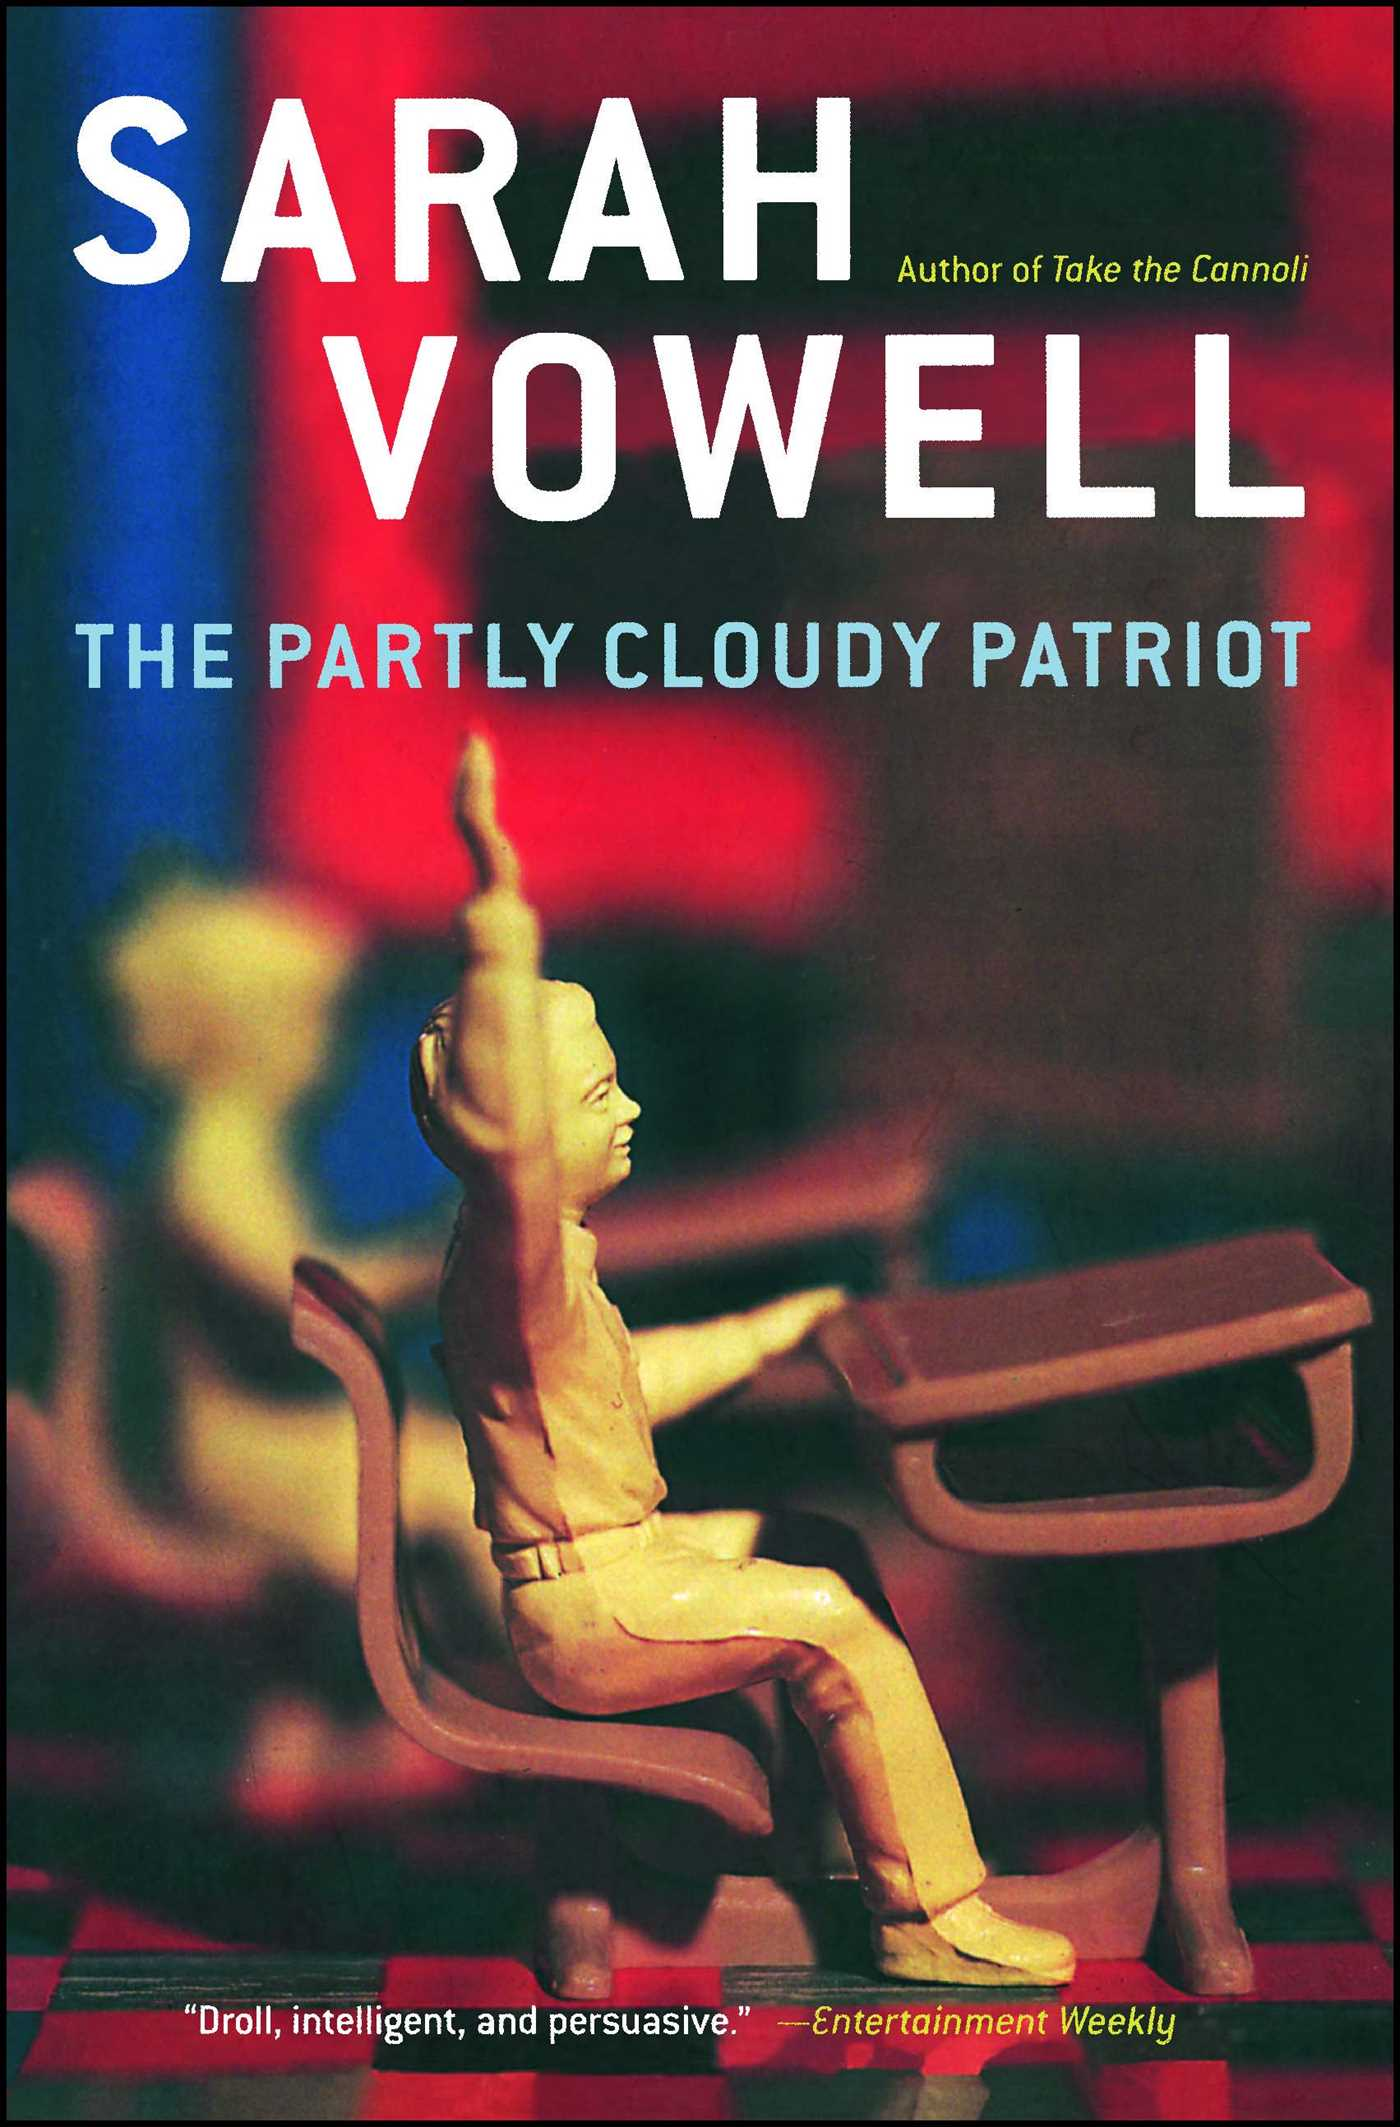 The partly cloudy patriot 9780743243803 hr